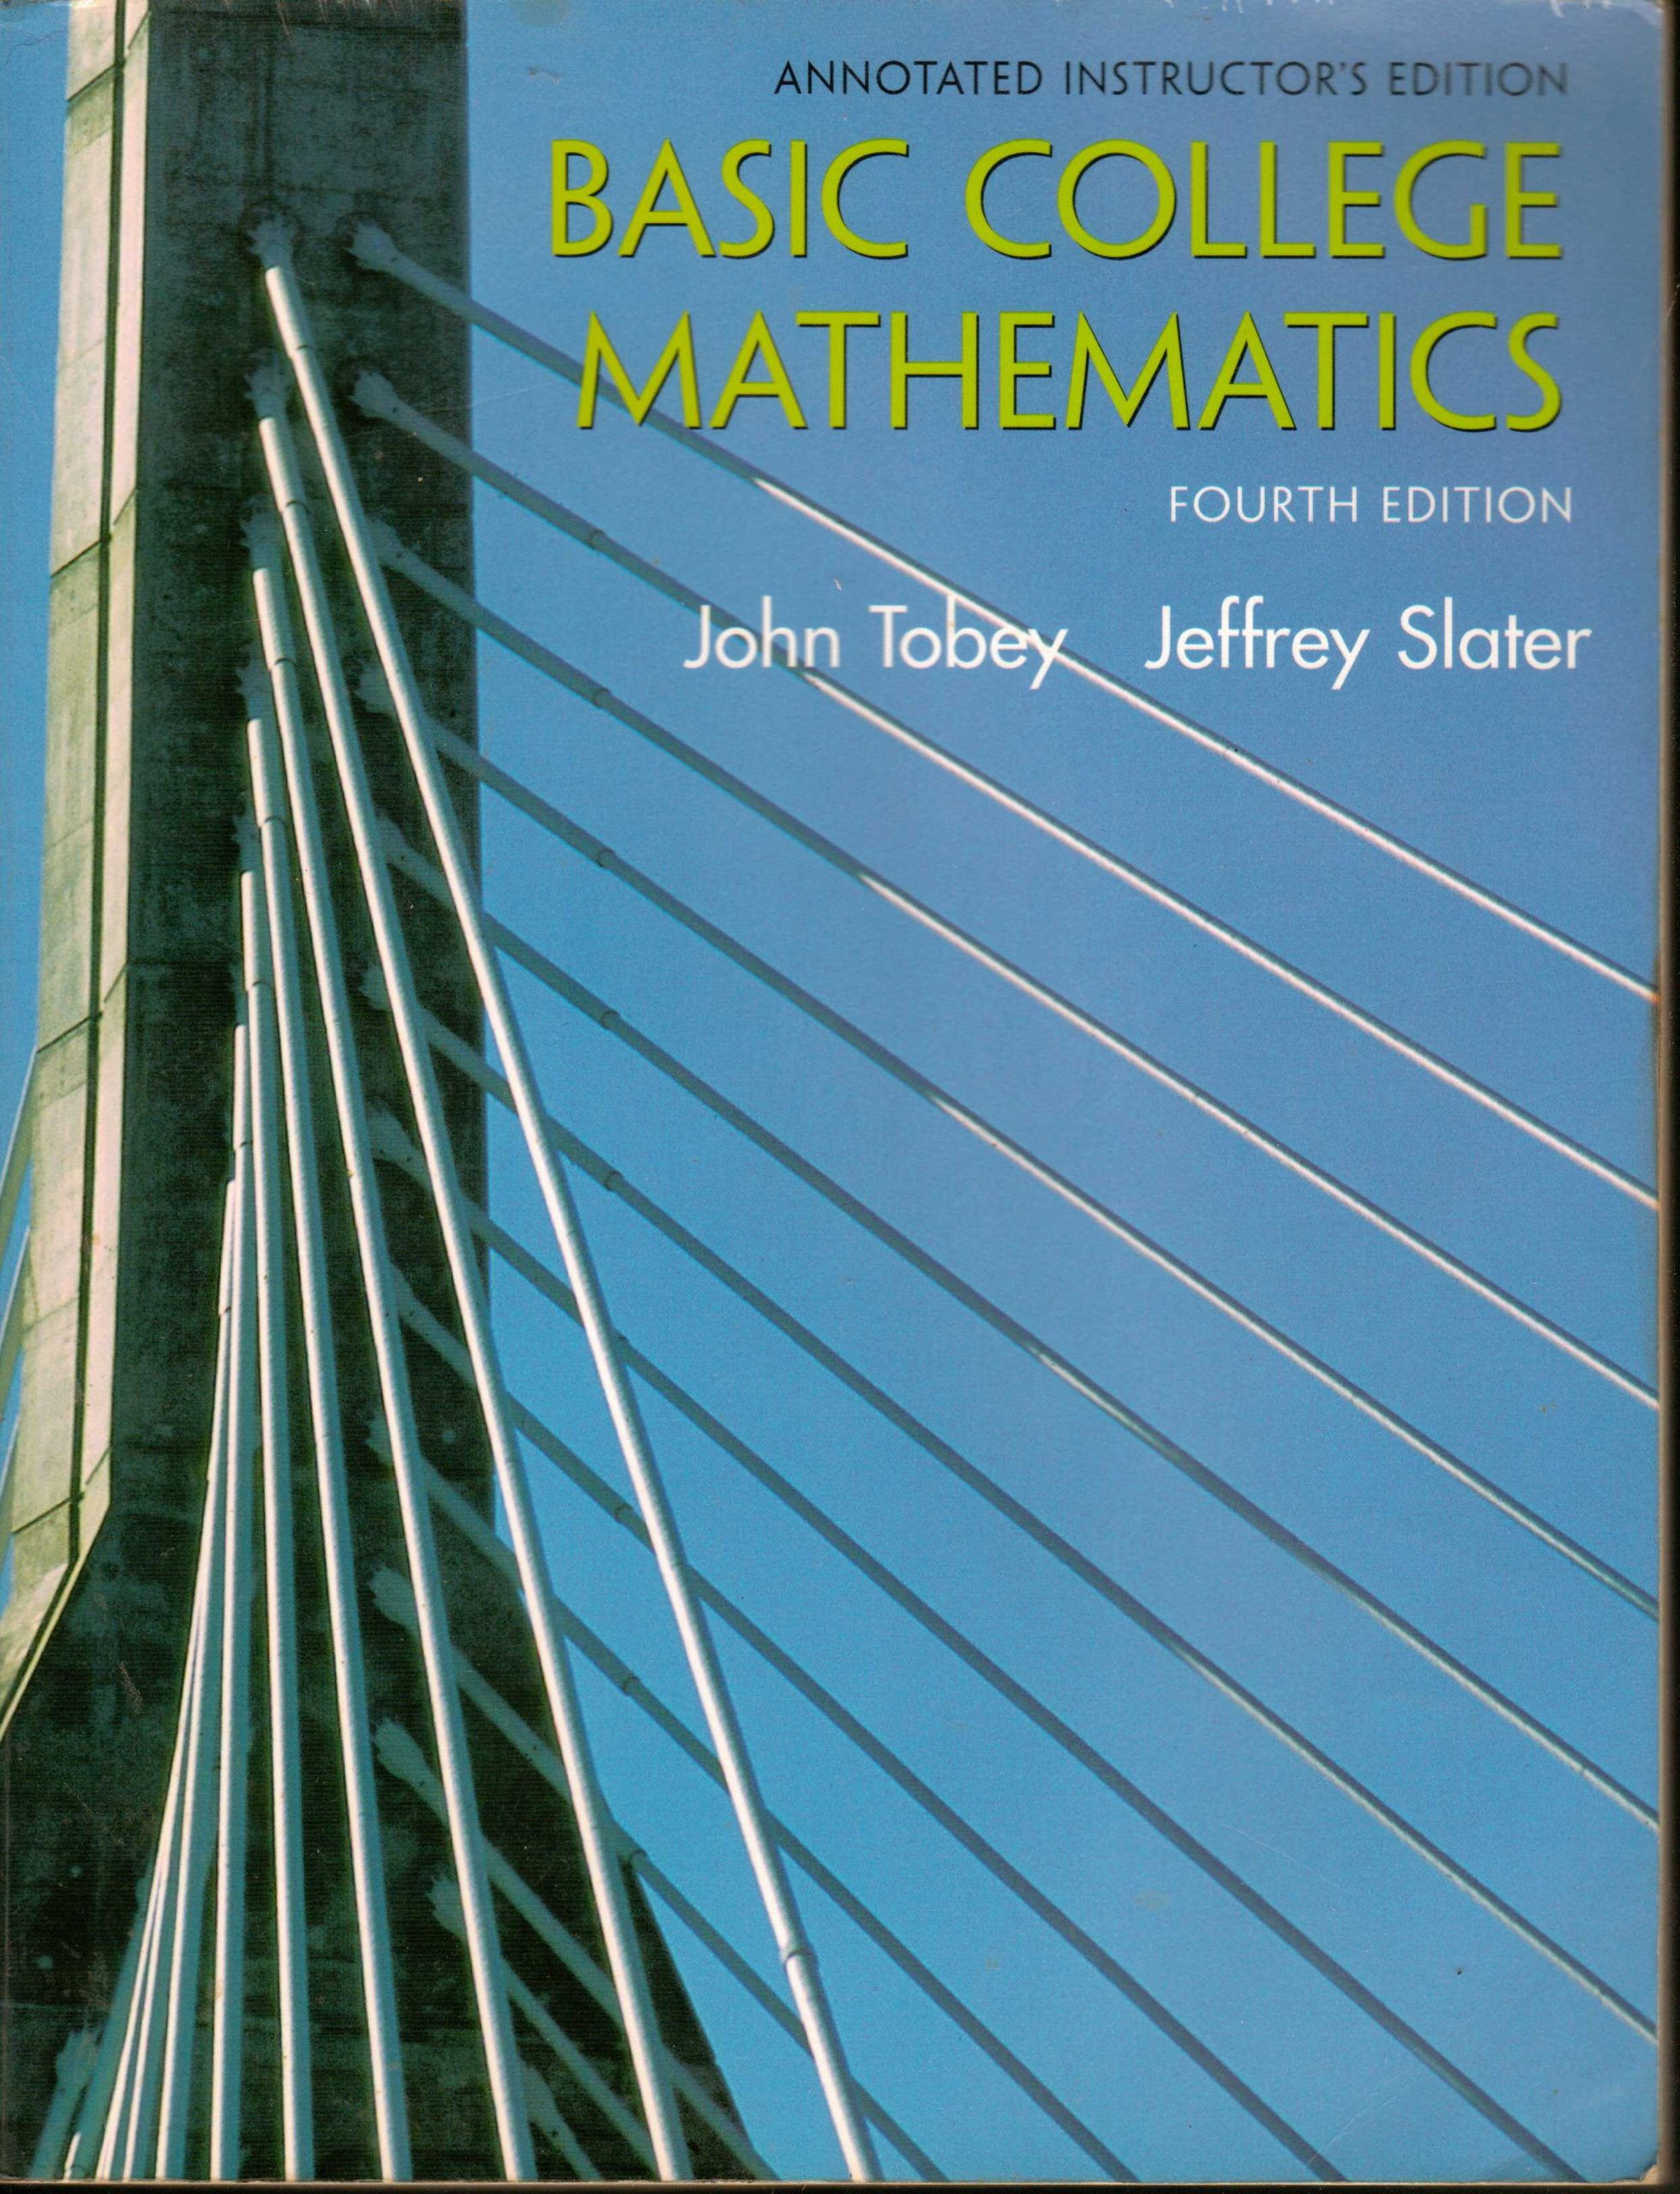 Download Basic College Mathematics: ANNOTATED INSTRUCTOR'S EDITION ebook